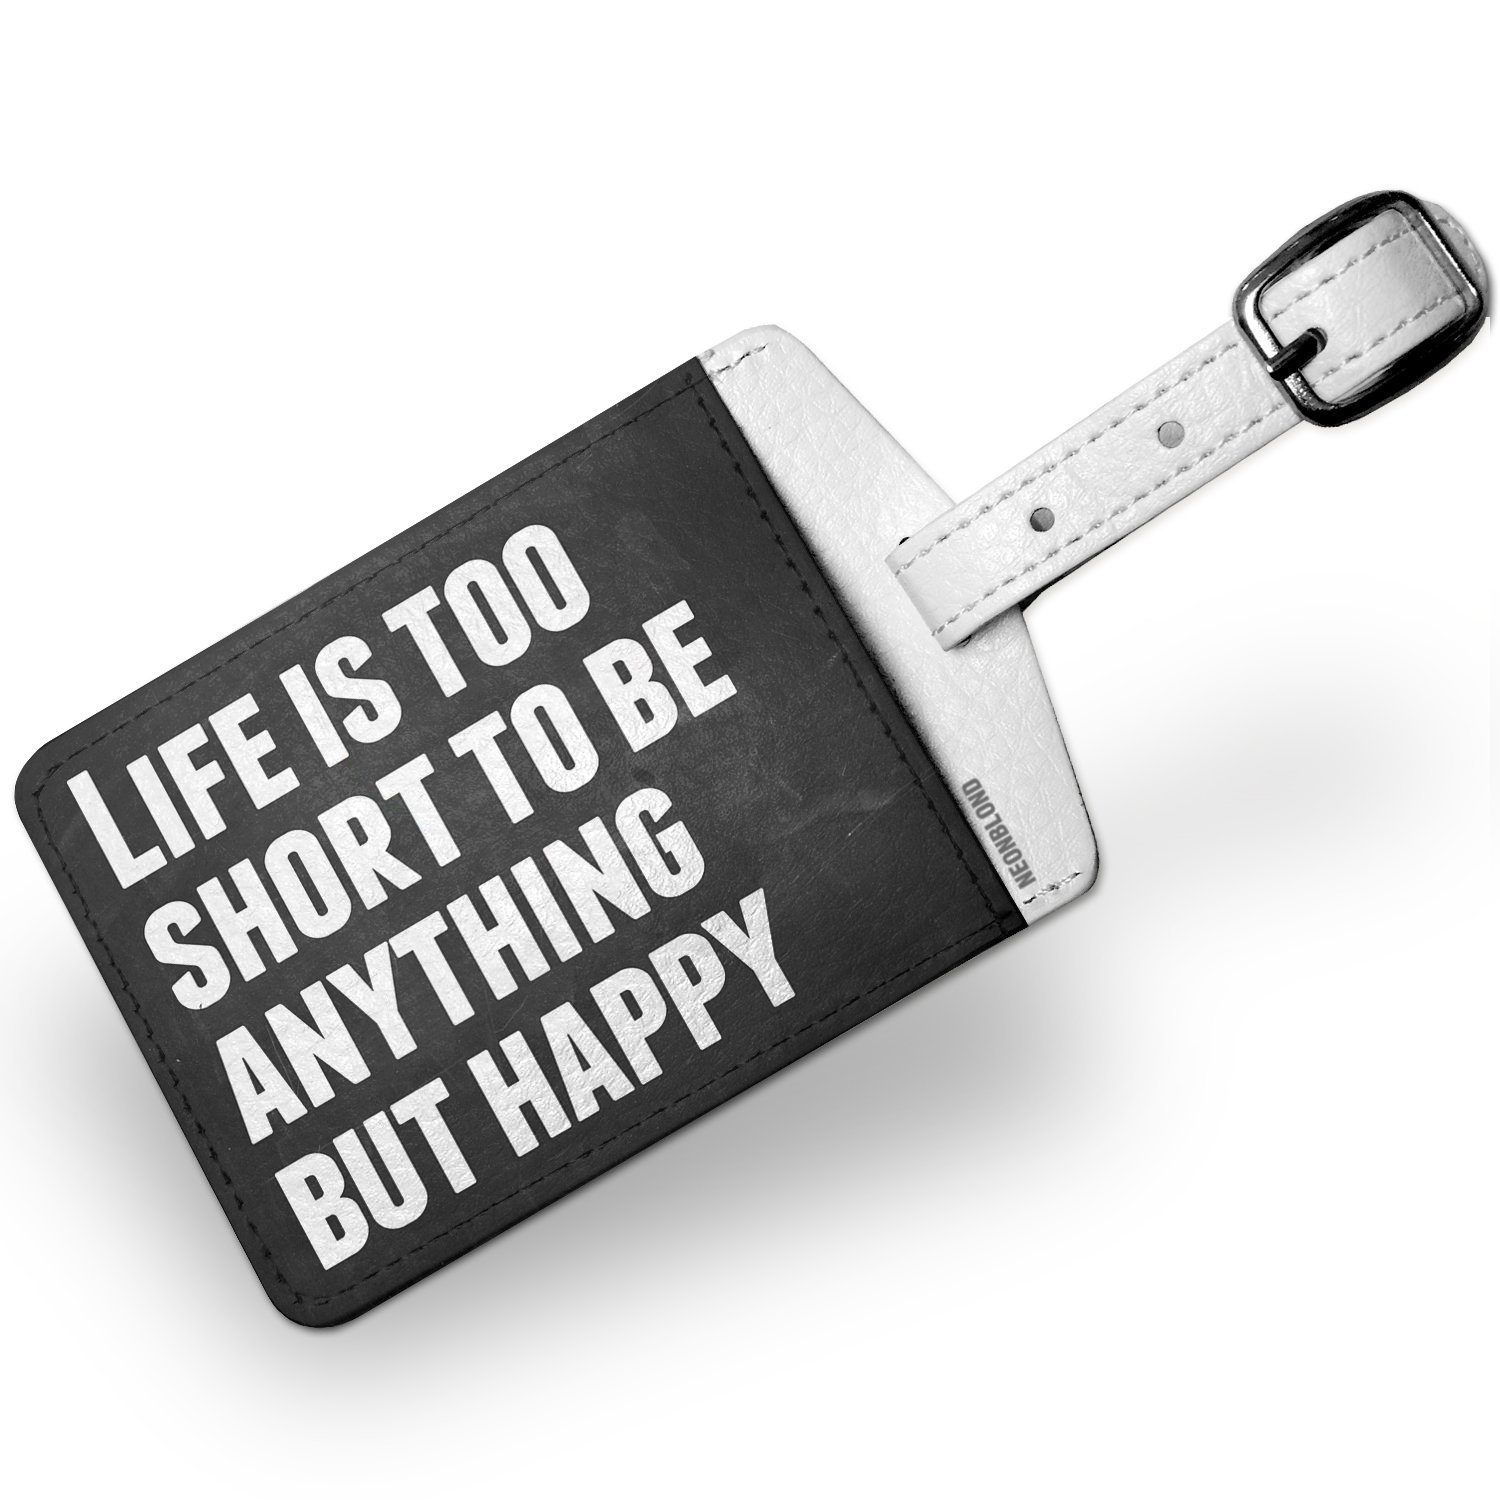 Luggage Tag Life is too short to be anything but happy - NEONBLOND